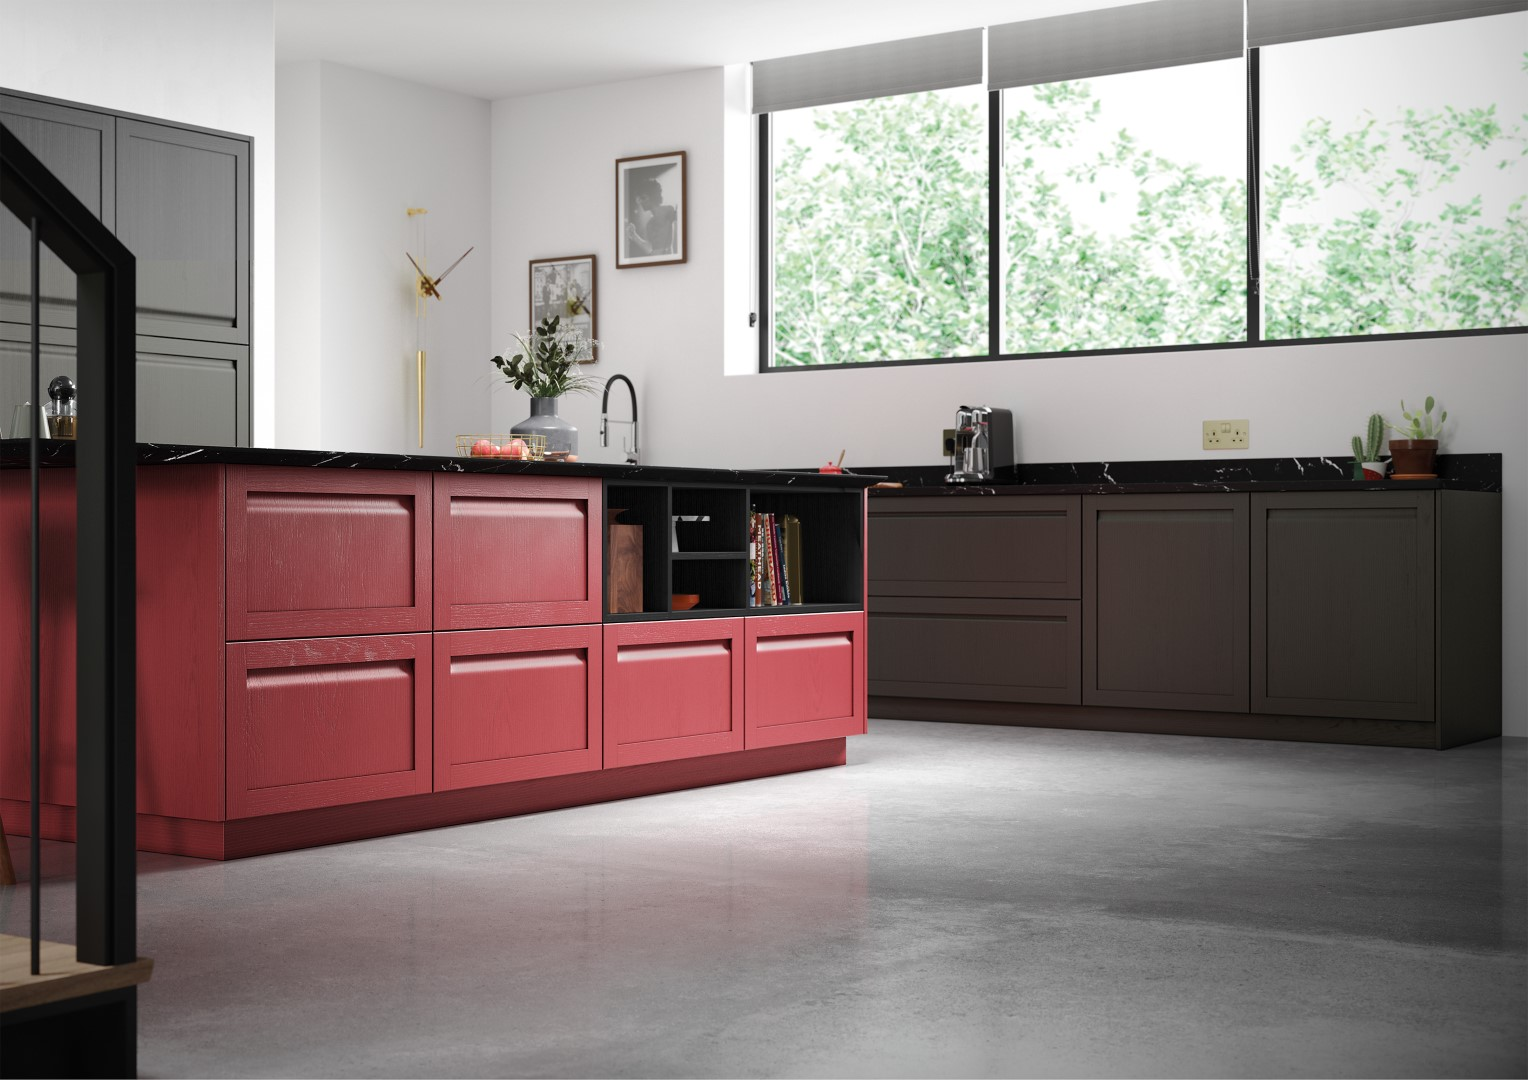 Harborne Graphite and Chicory Red - Kitchen Design - Alan Kelly Kitchens - Waterford - 2